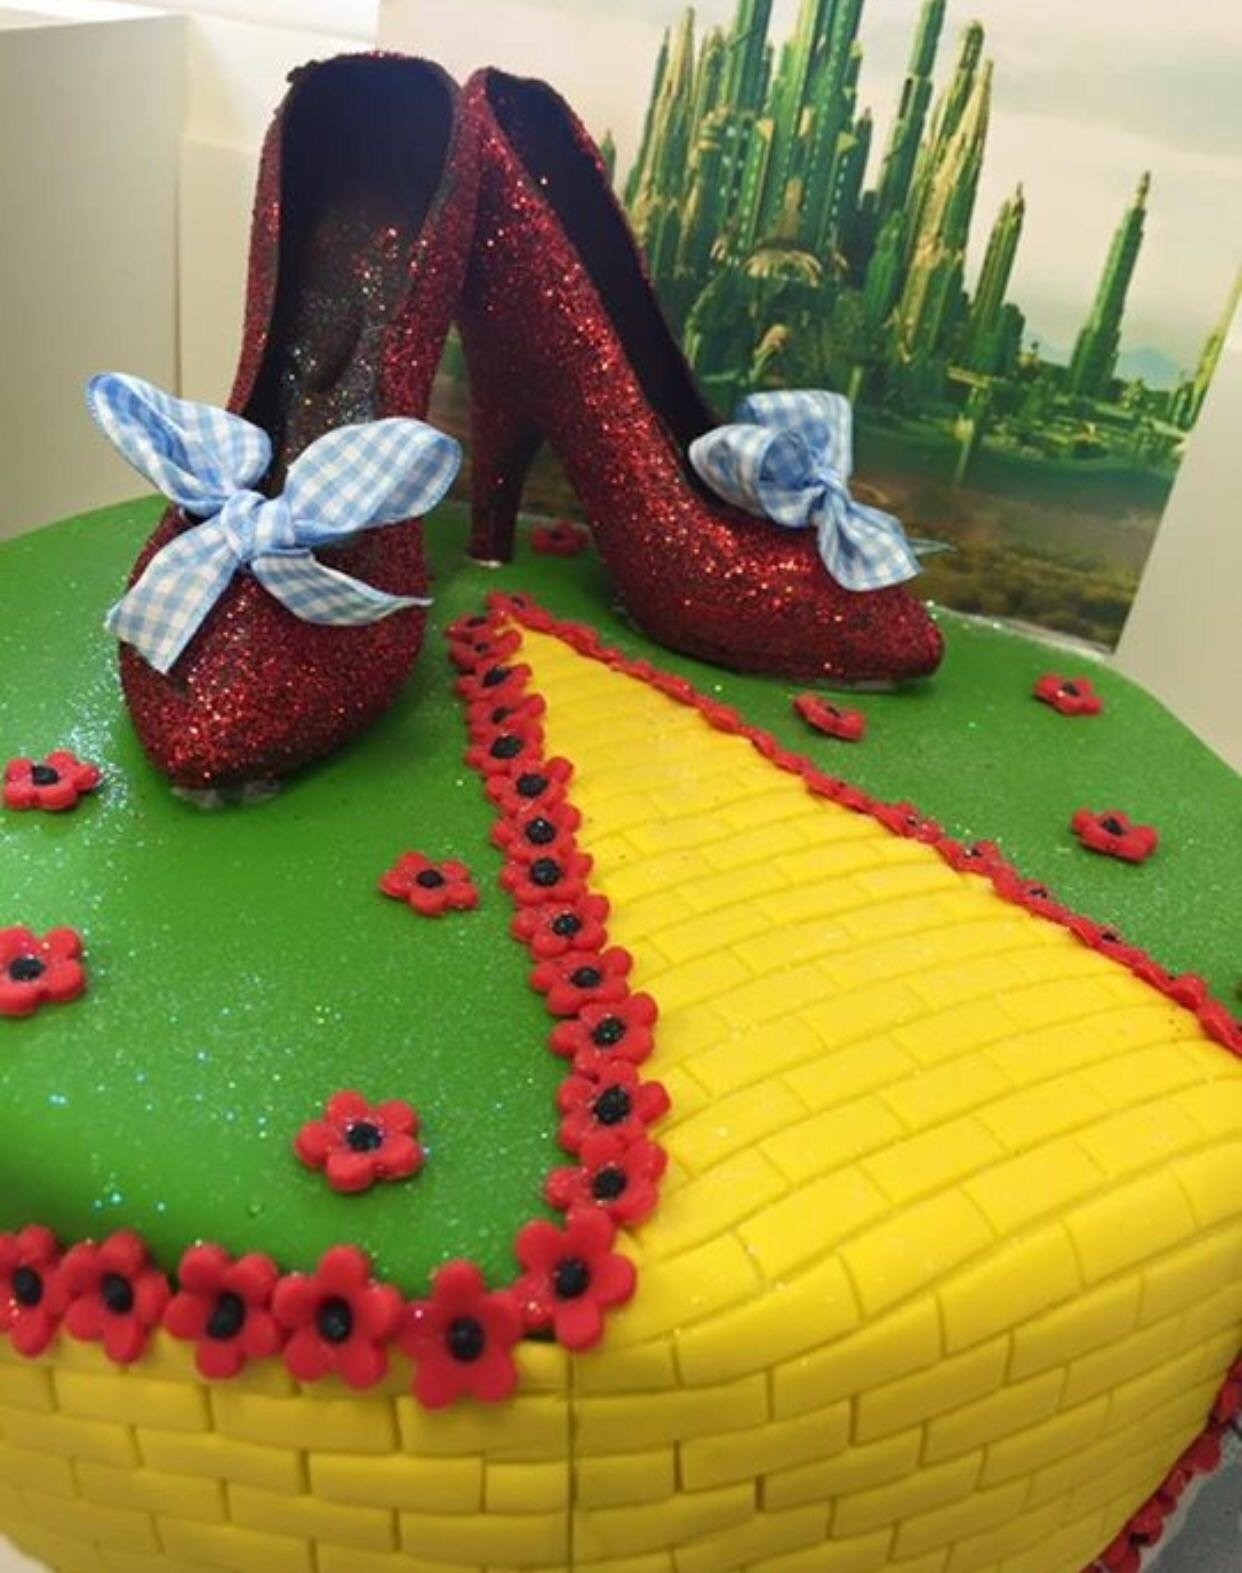 10 Pretty Wizard Of Oz Cake Ideas dorothy the wizard of oz cake peter herd 2020